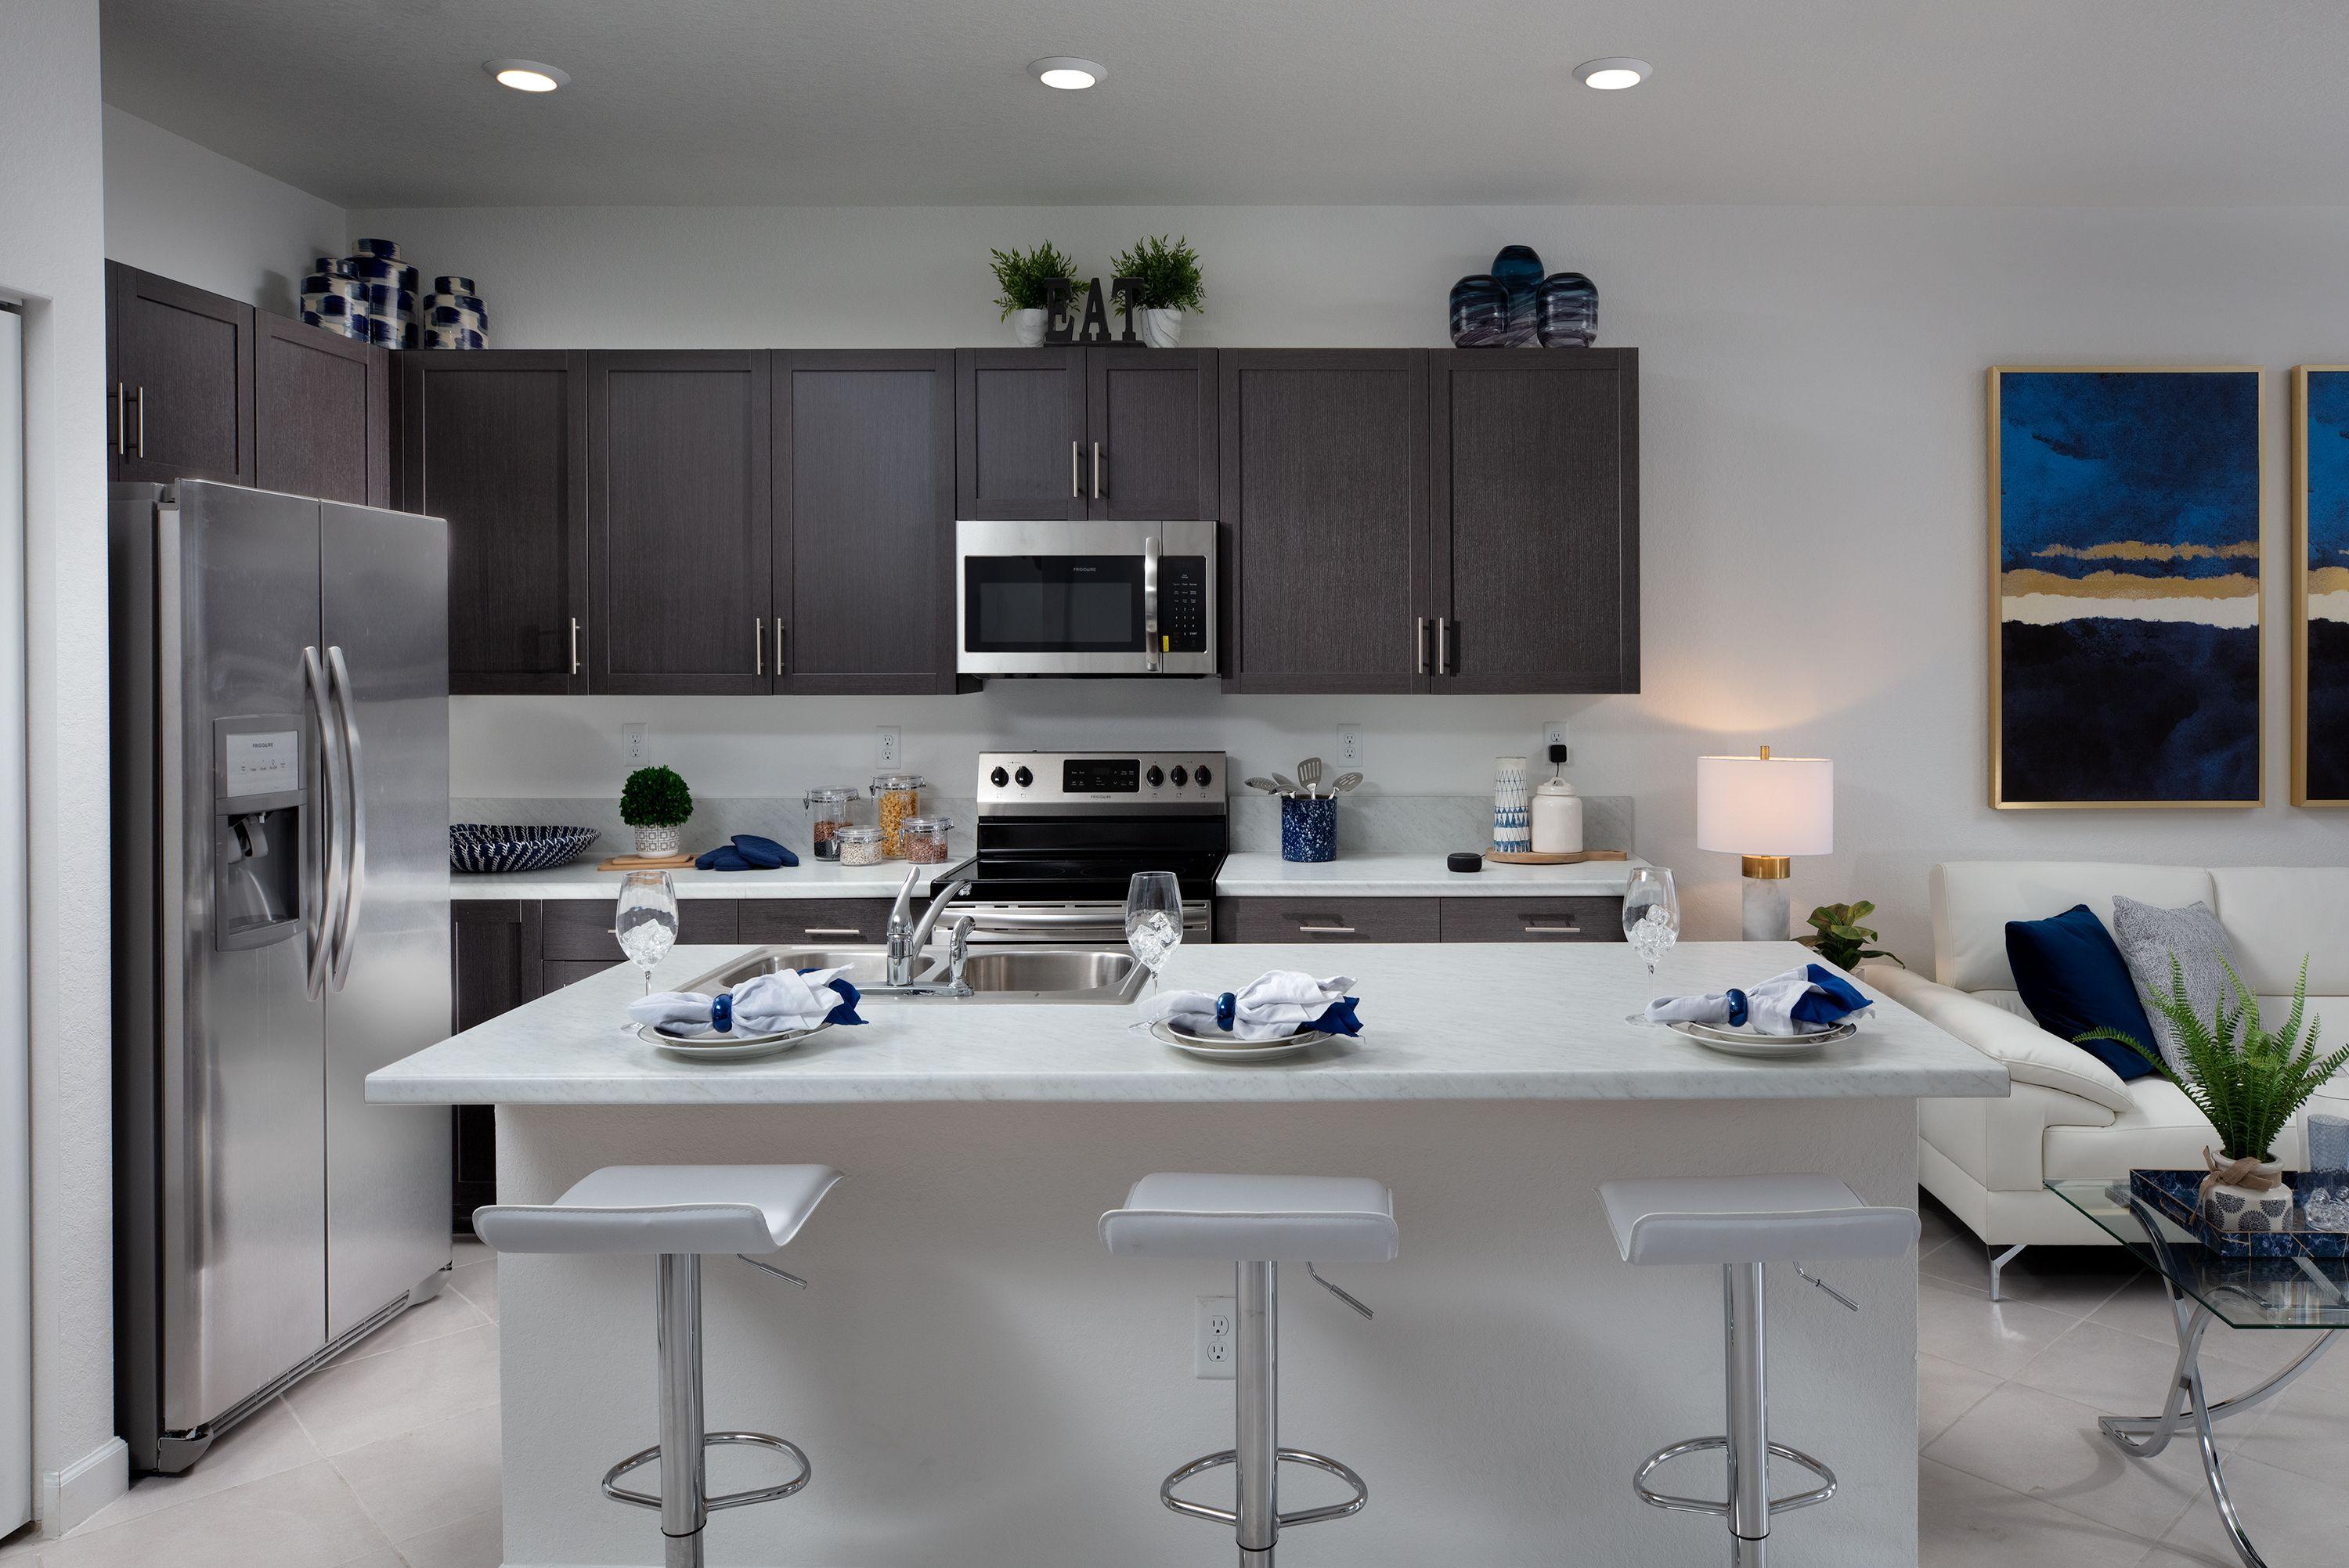 From The Kitchen You Ll Be Able To Keep An Eye On Your Little Ones Playing In The Patio As You Whip Up A Nutritious Meal Aquabella Hia New Homes Lennar Home